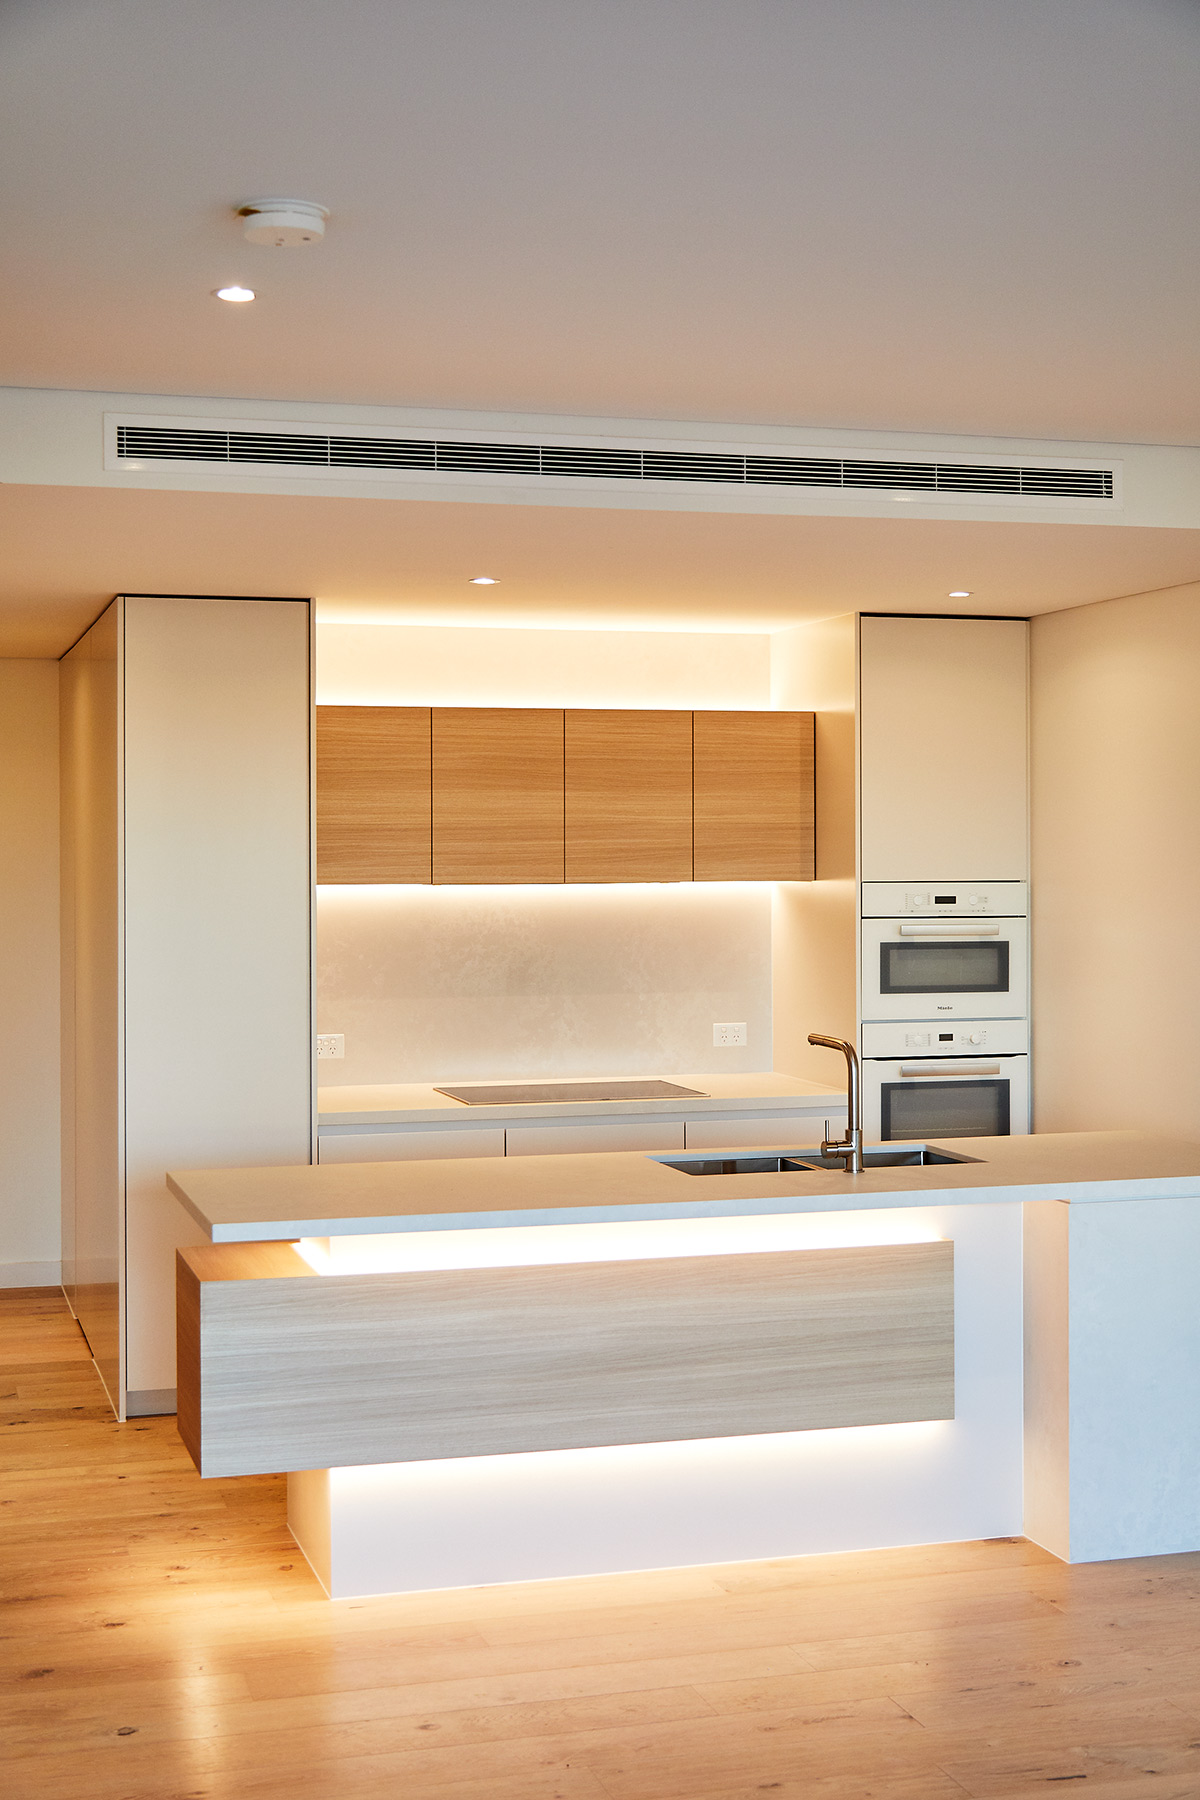 Dynamic Projects - Pavilion Apartments Cronulla